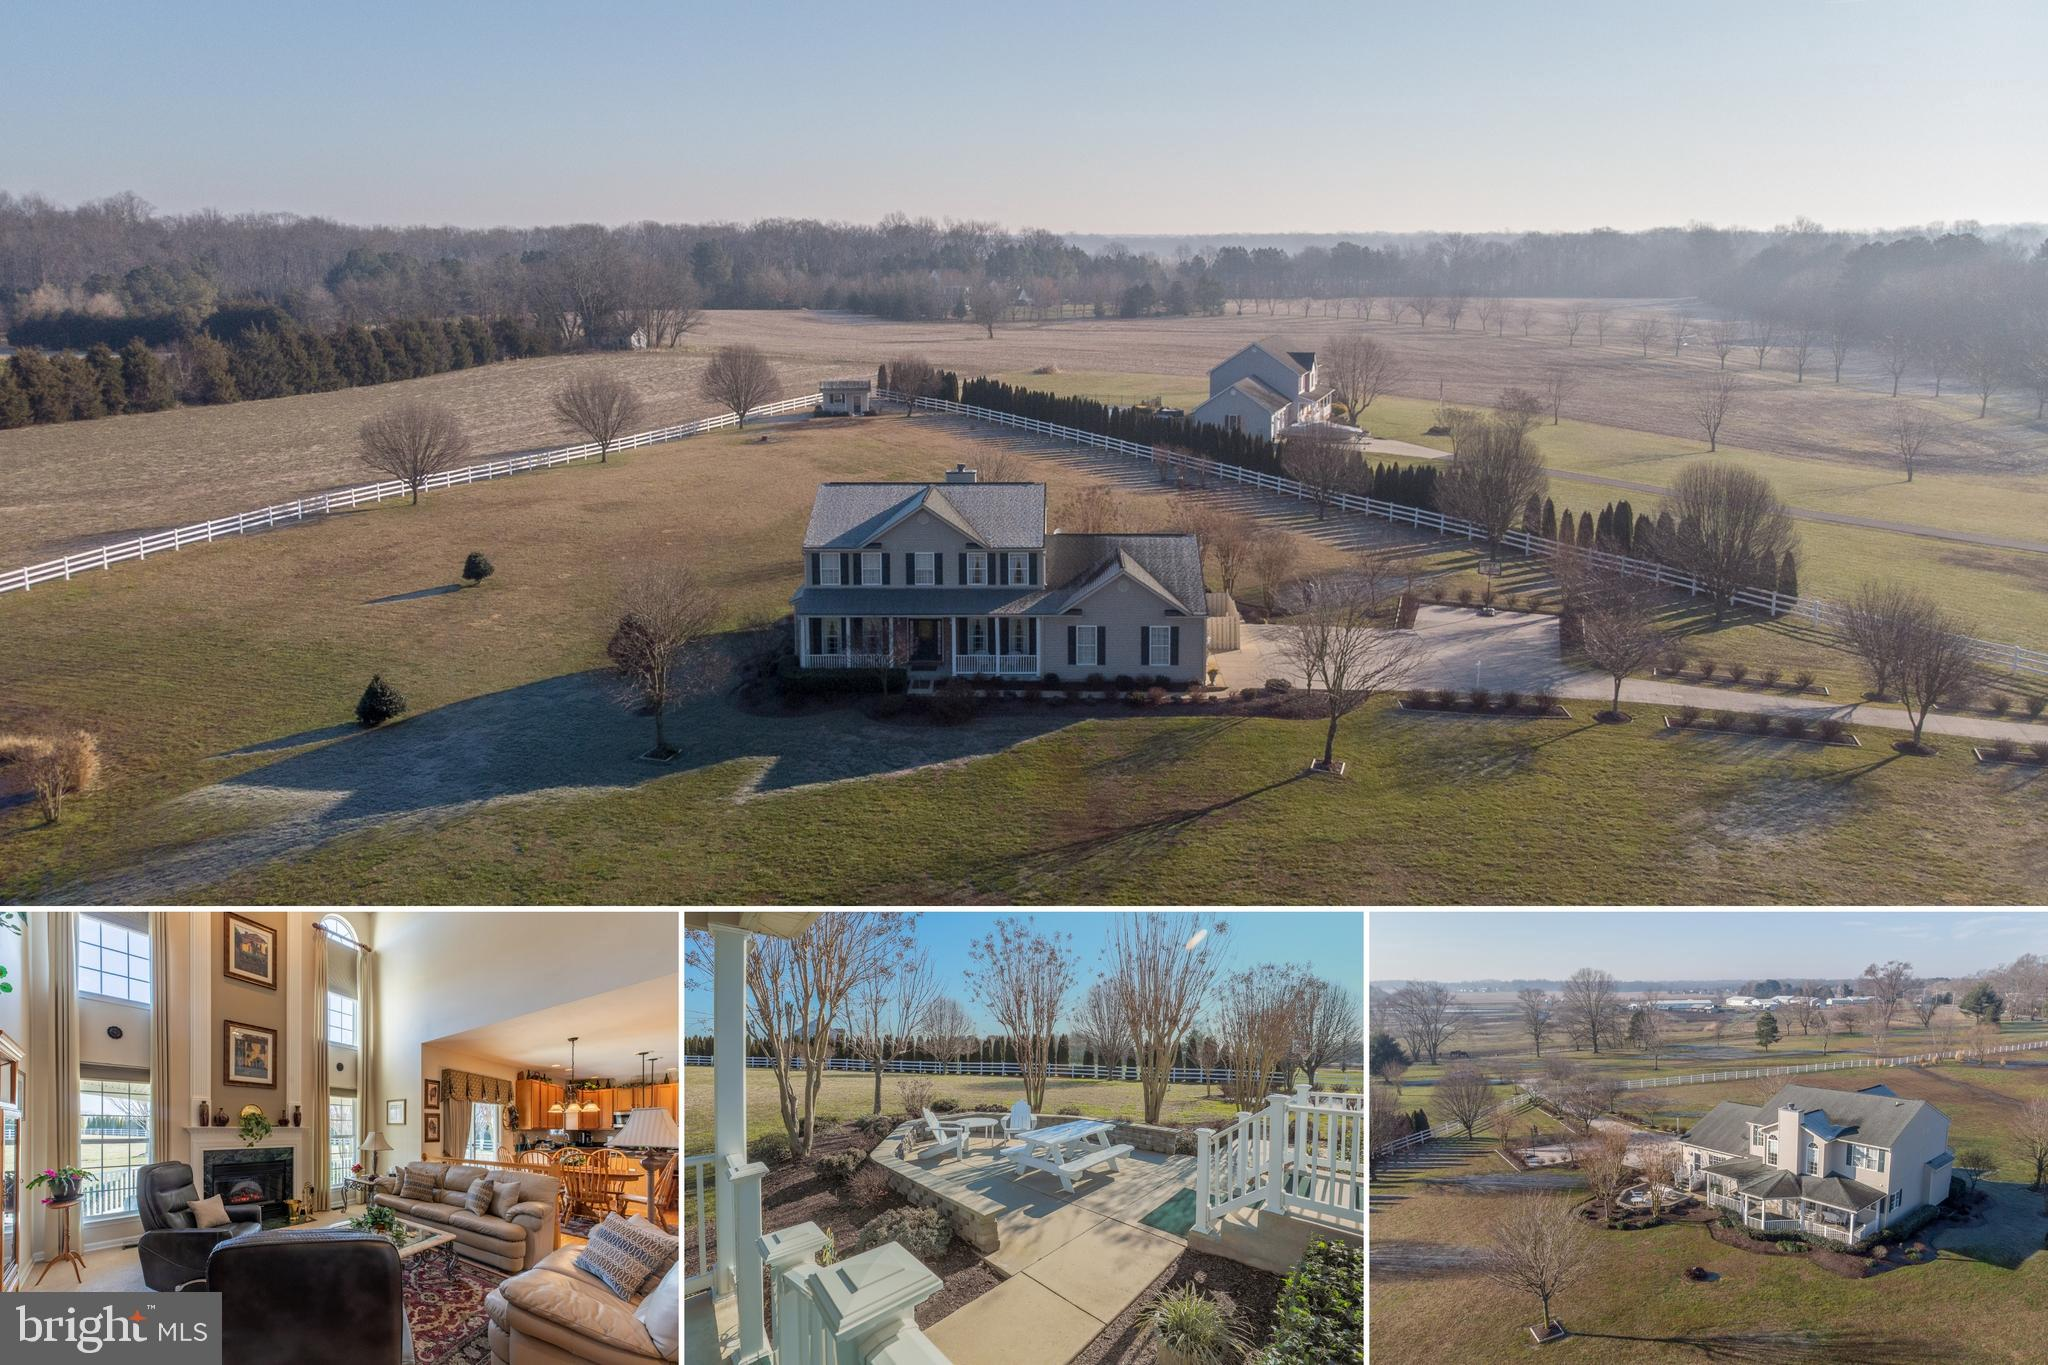 URGENT - AWESOME PROPERTY FOR SALE! SPANNING OVER DUAL LEVELS AND GENEROUS 5.83-ACRE LAND, THIS HOME